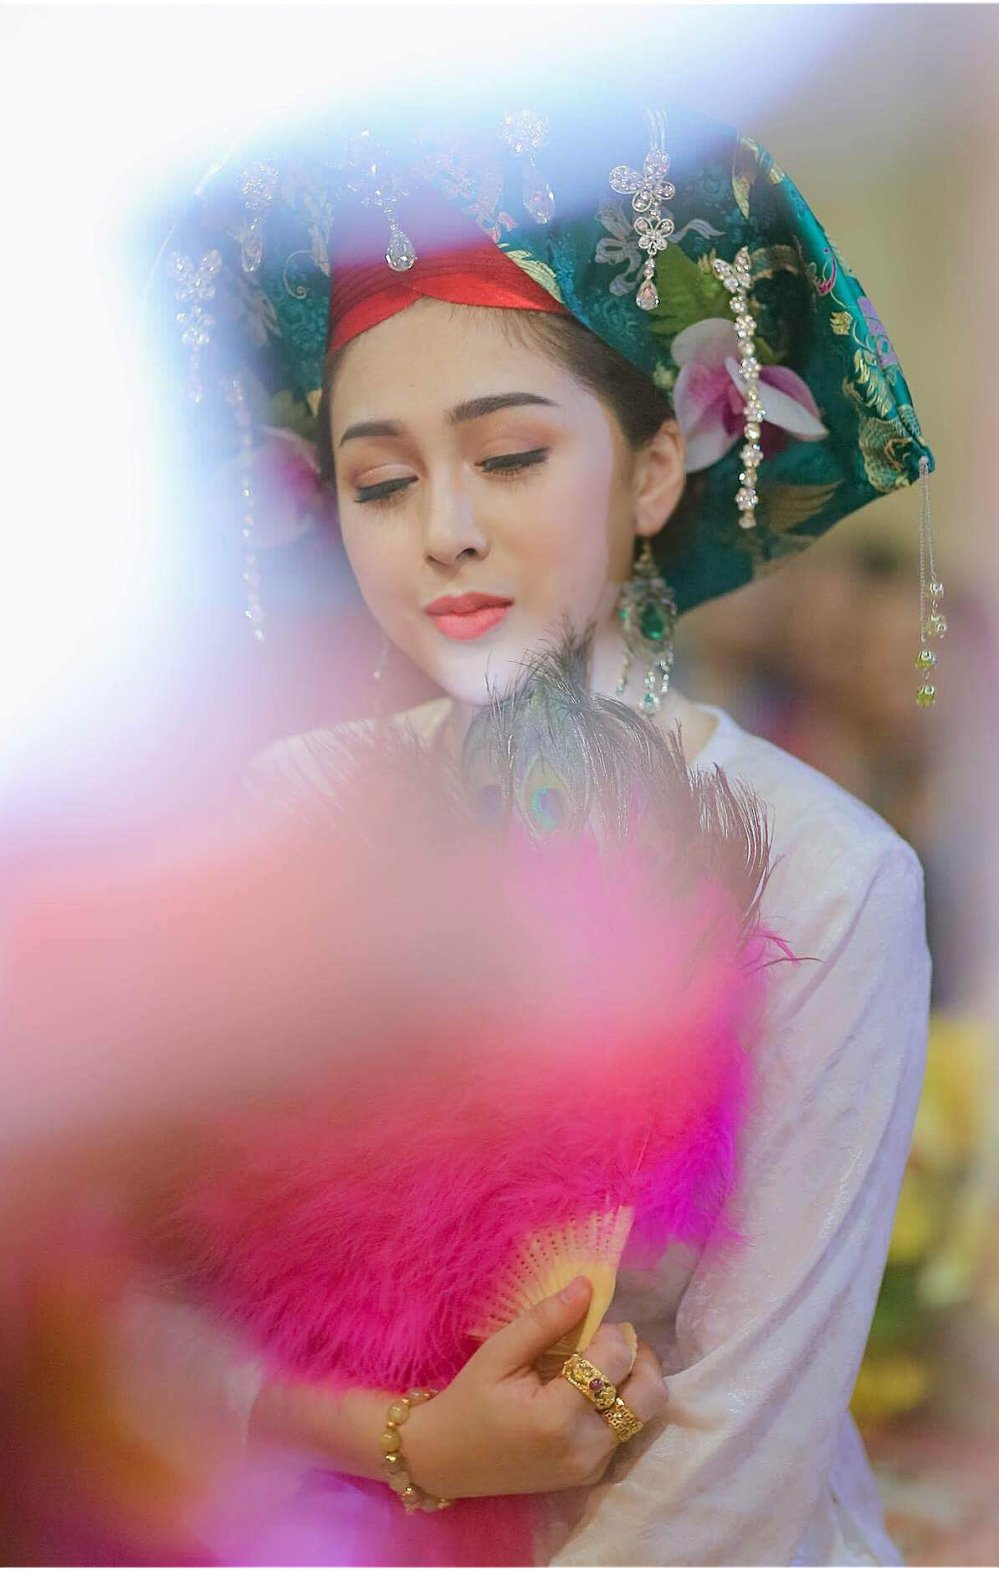 Vo Thanh Hien goi cam me dam long nguoi hinh anh 6